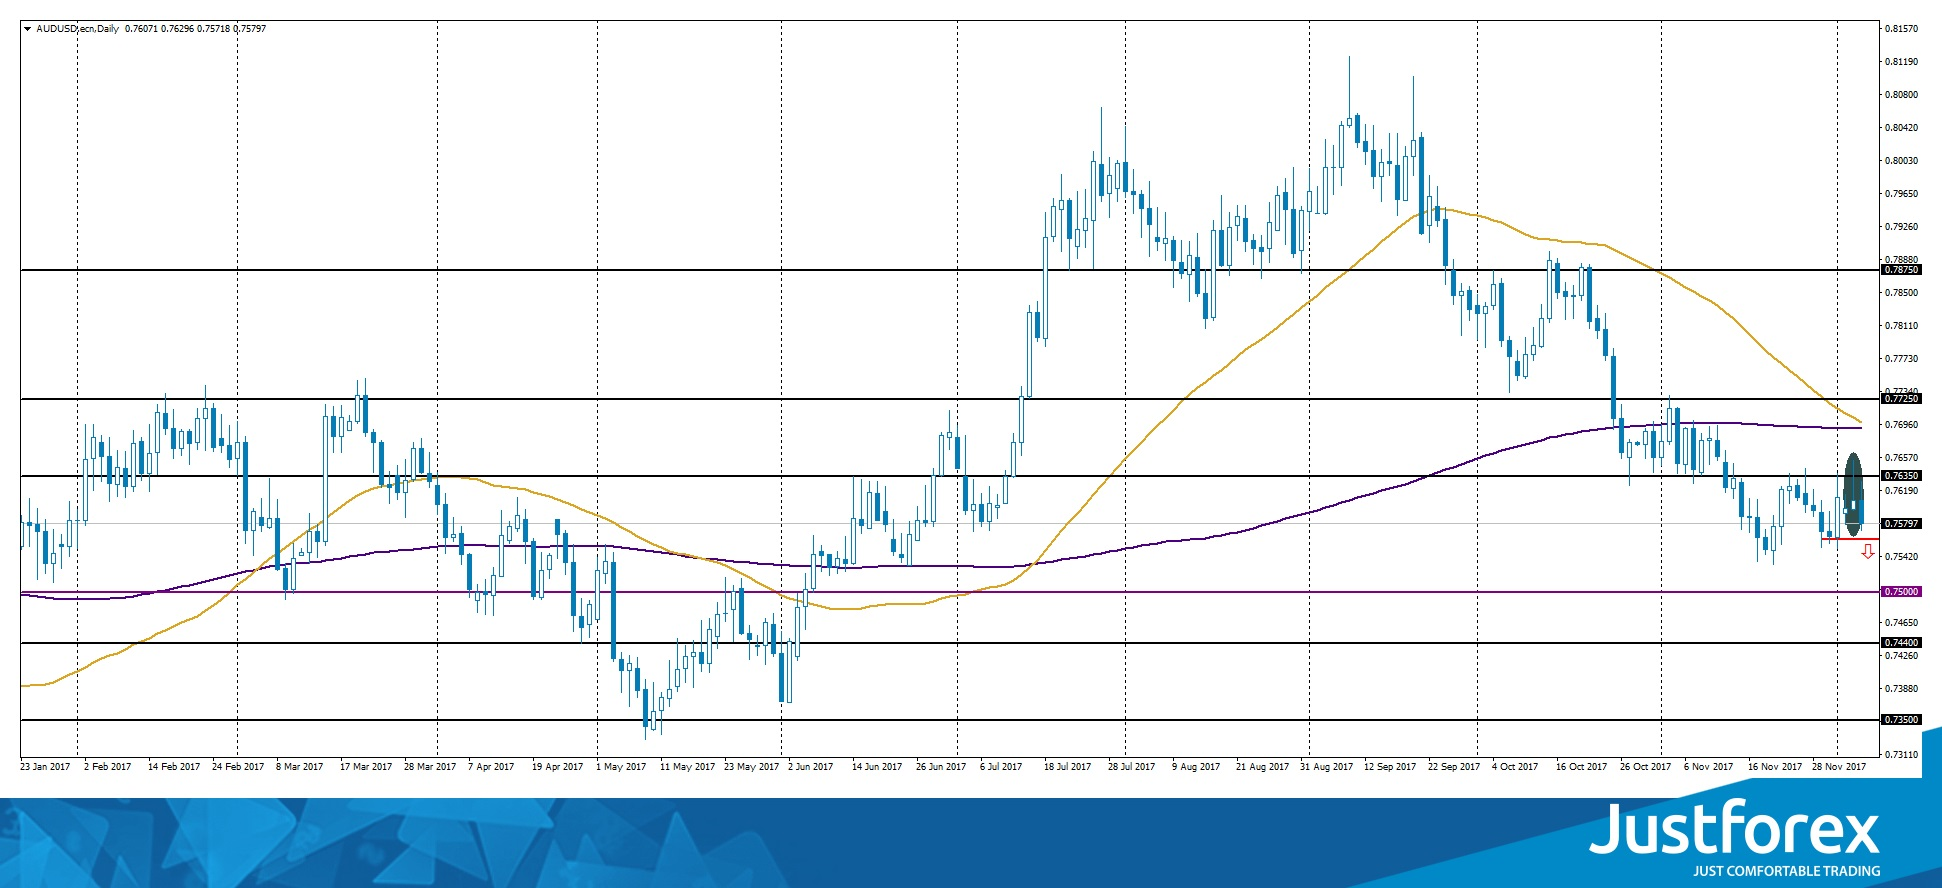 Pin Bar on AUD/USD